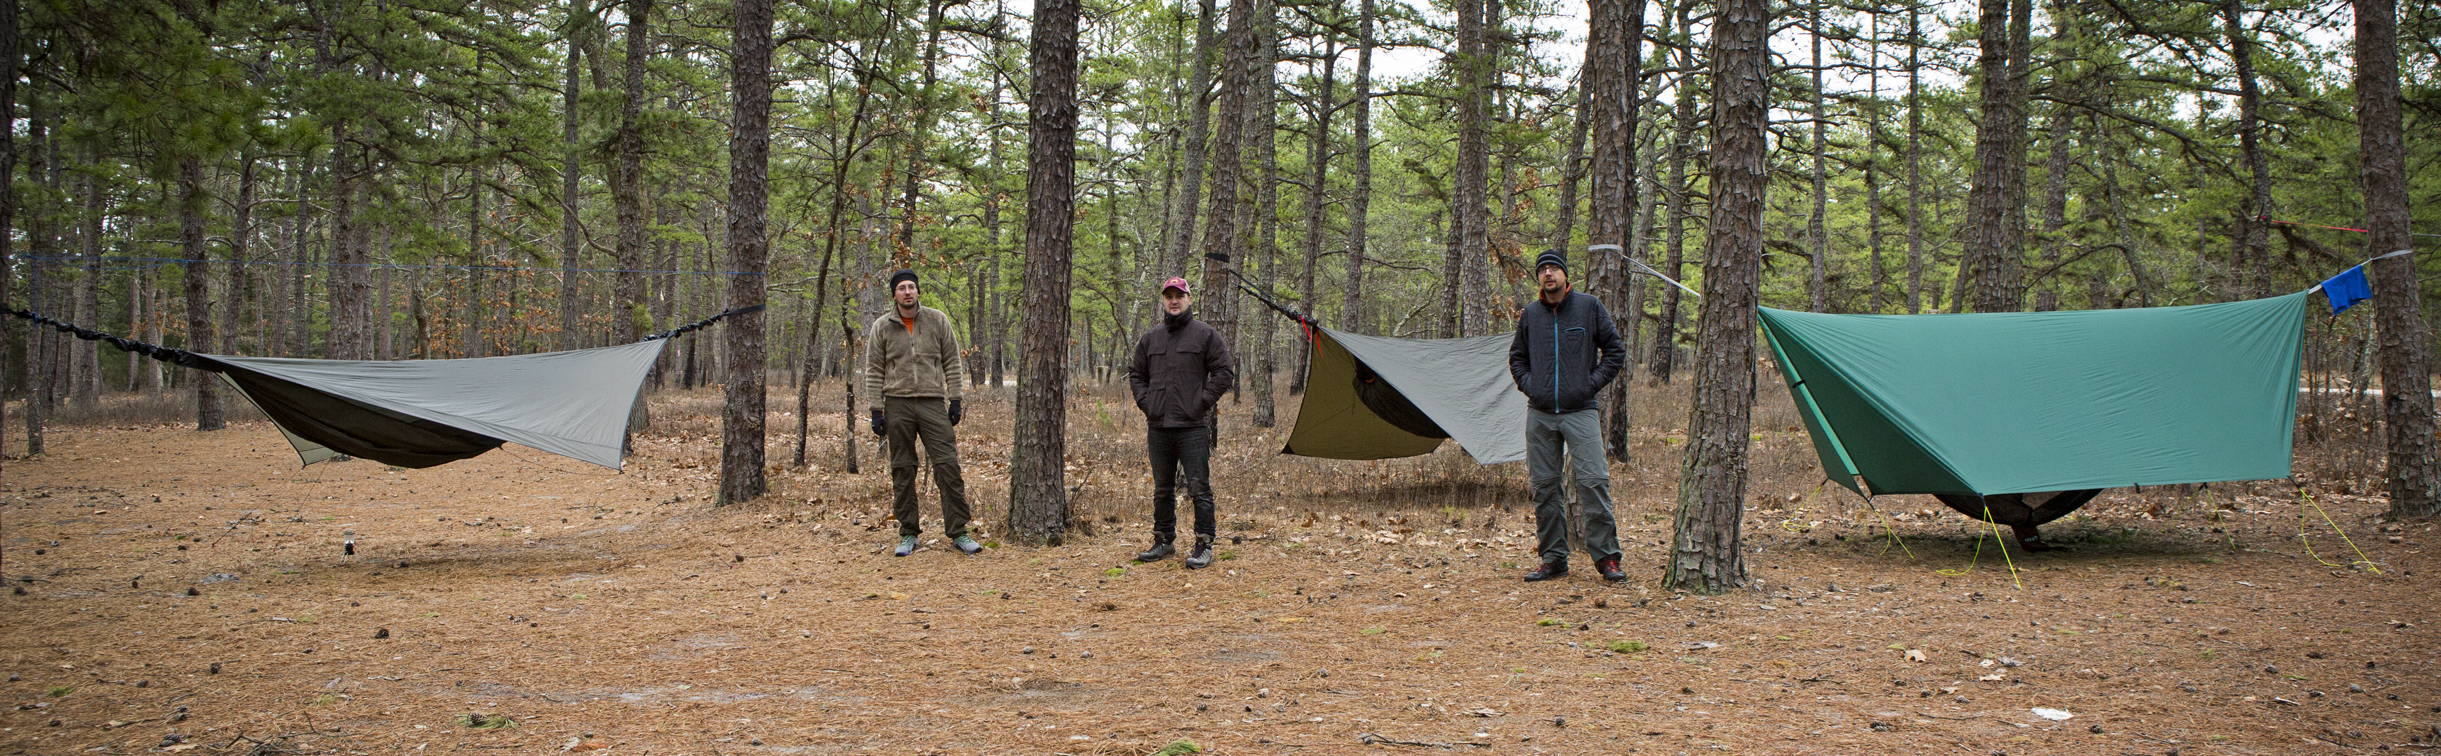 We had a great hang in the Pinebarrens recently. Frank got to use his new hennessy hammock and 0 degree bag, Loren tested out his new underquilt, and I got to try out the aquaquest tarp that I modified to use with my hammock for foul weather, it now has doors.